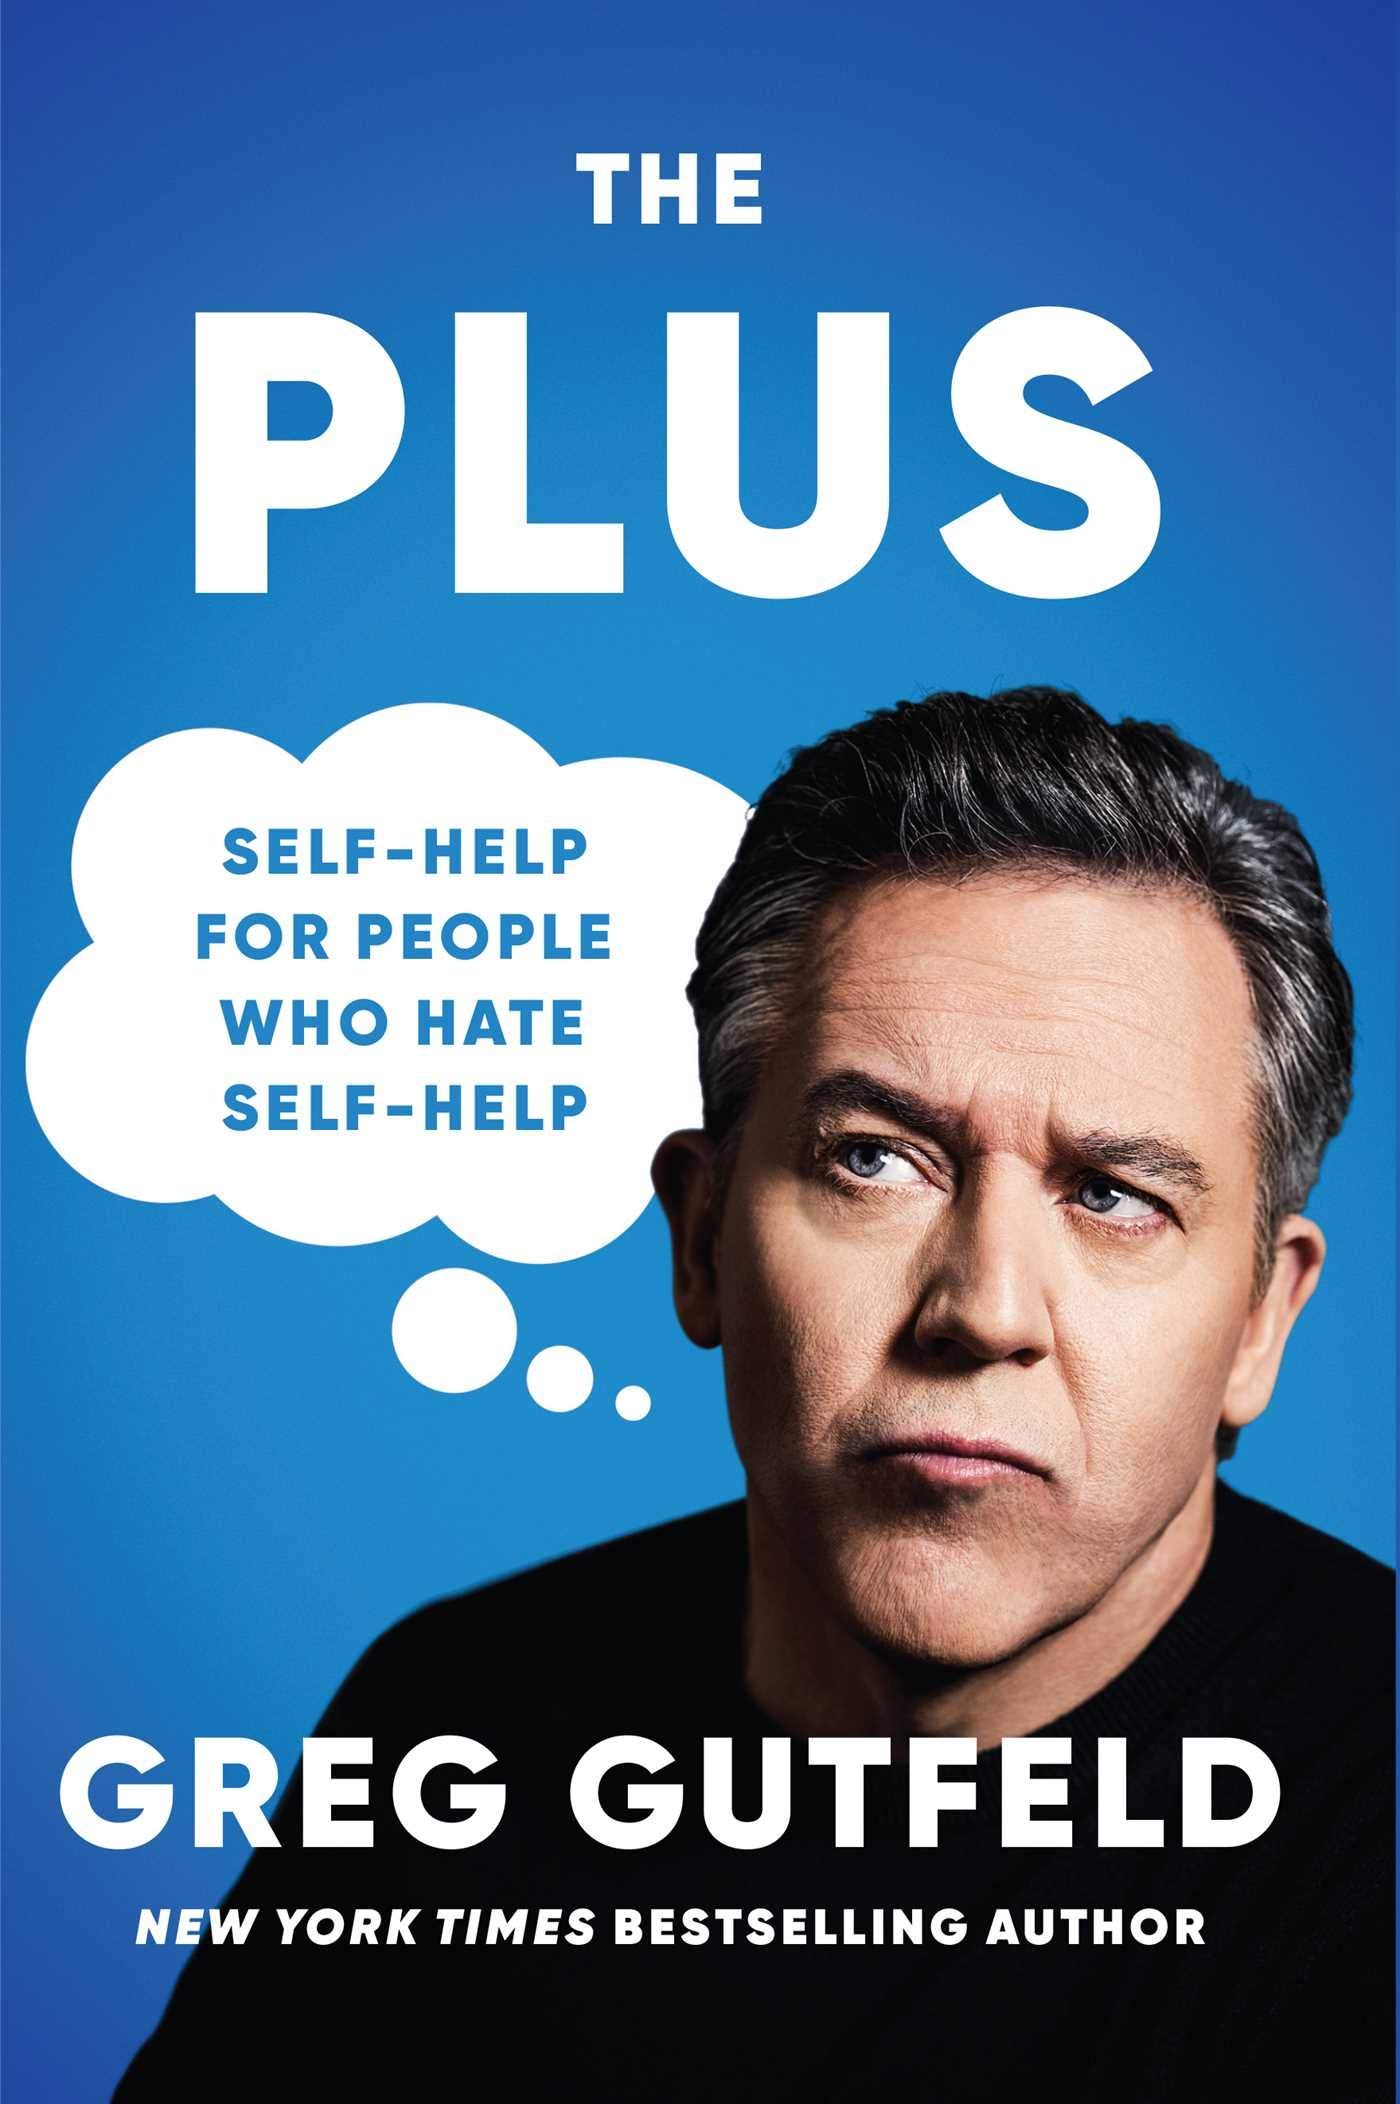 Cover image of The Plus by Greg Gutfeld